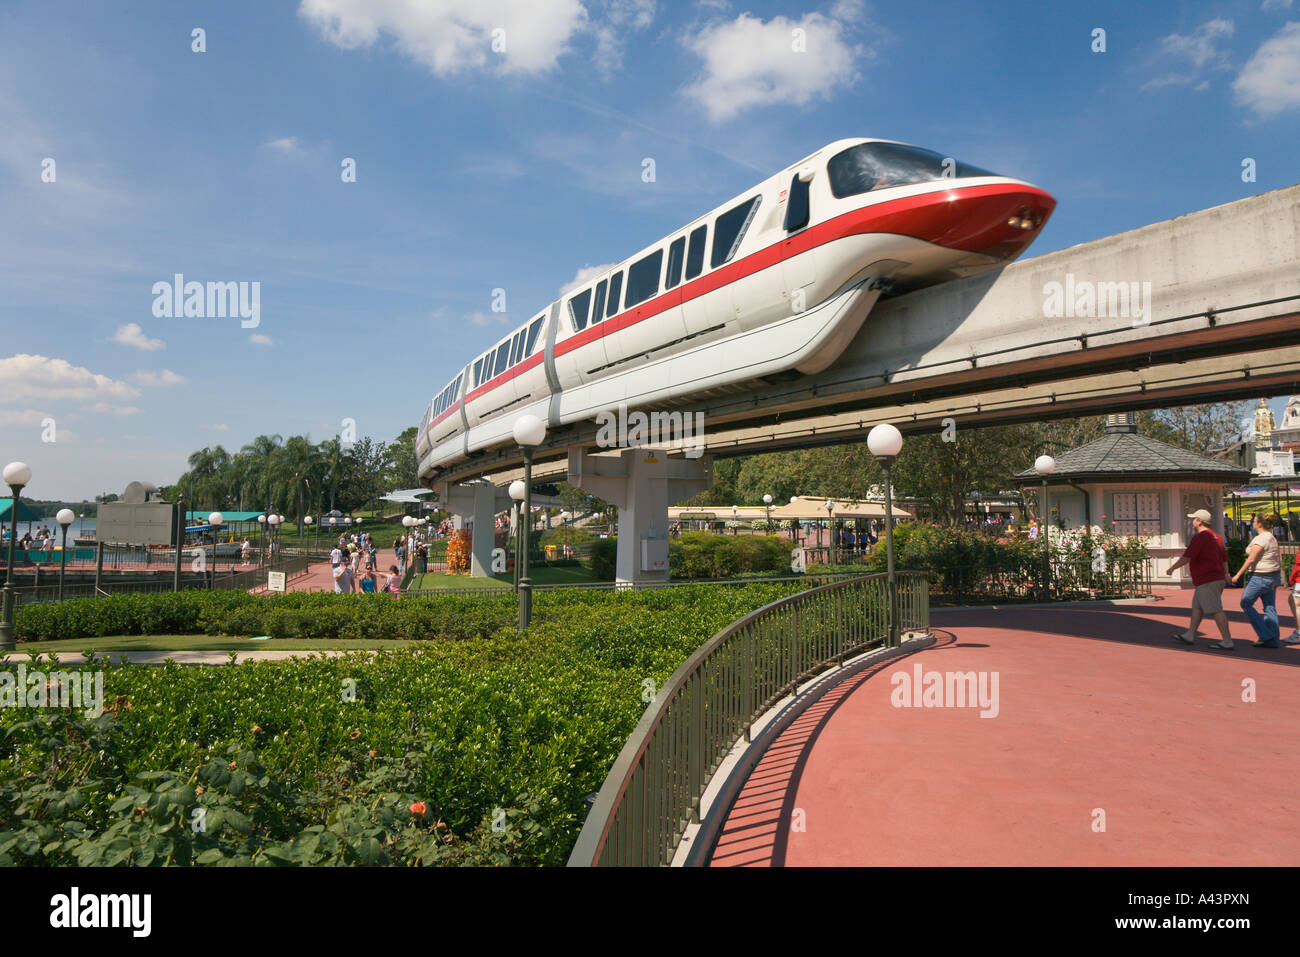 Monorail transports park guests between parks and hotels at Walt Disney World, Florida, USA - Stock Image